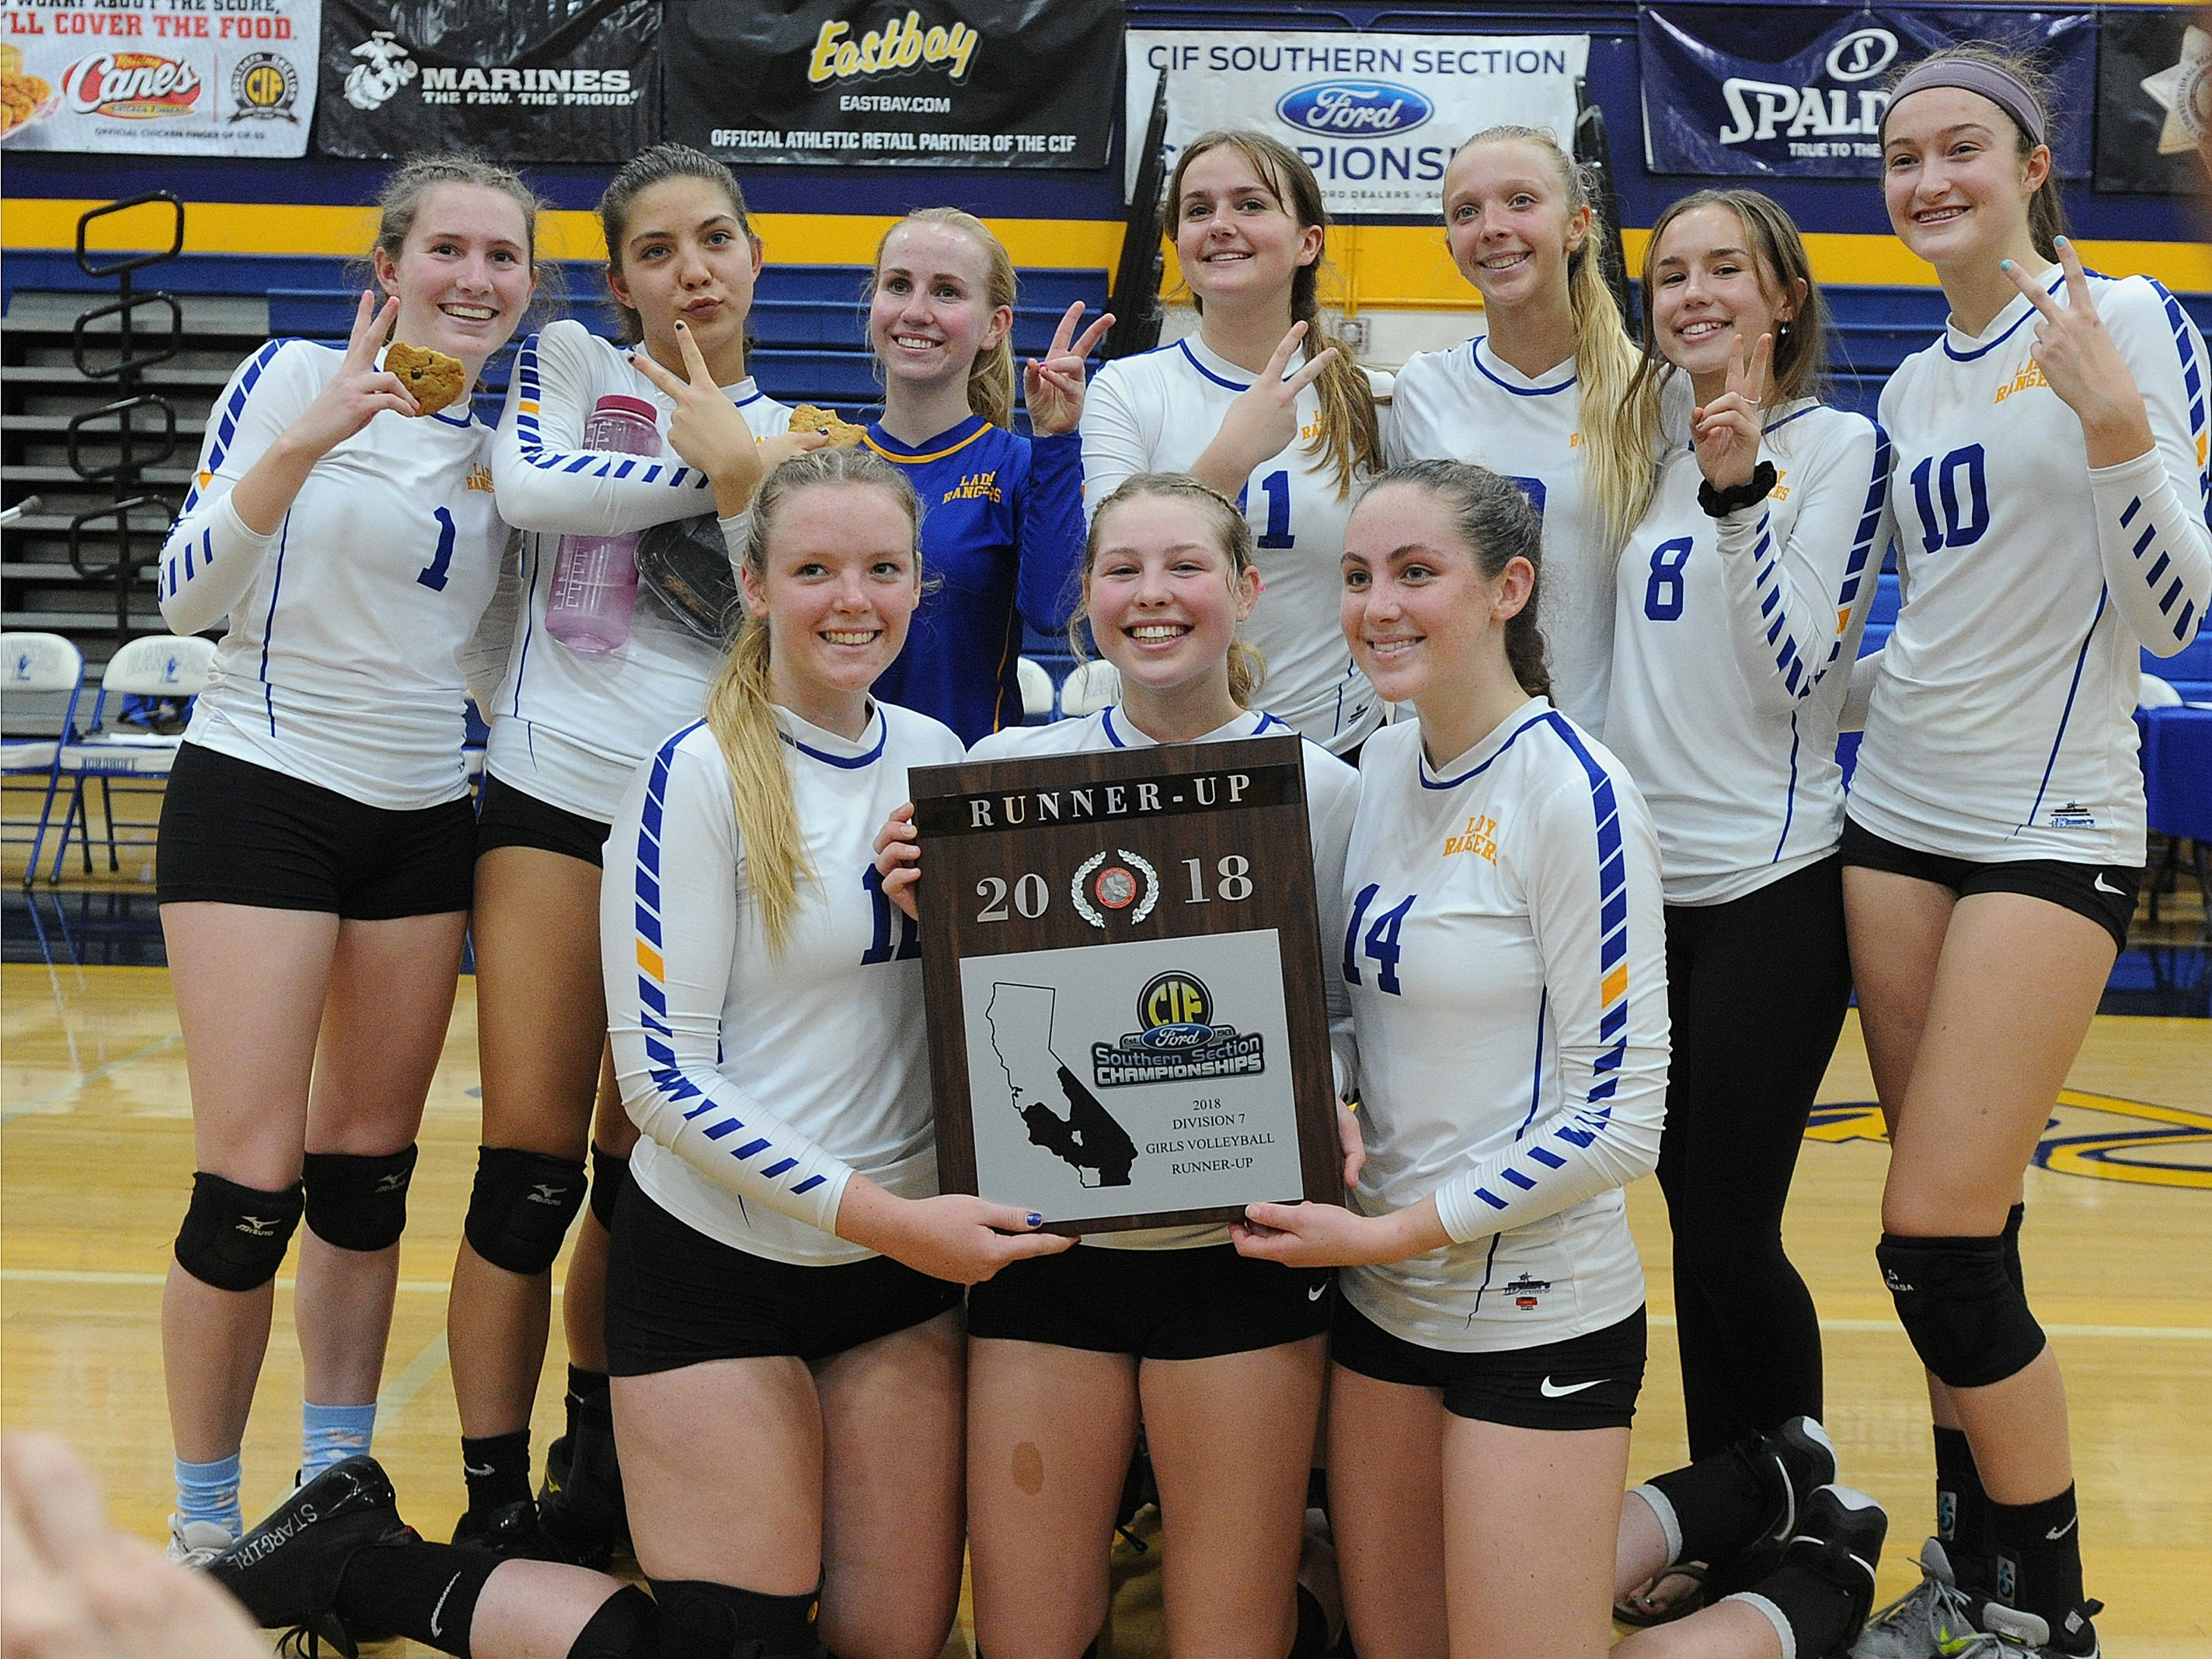 The Nordhoff High girls volleyball team poses with the runner-up plaque after a 3-1 loss to Linfield Christian in the CIF-SS Division 7 final Saturday.